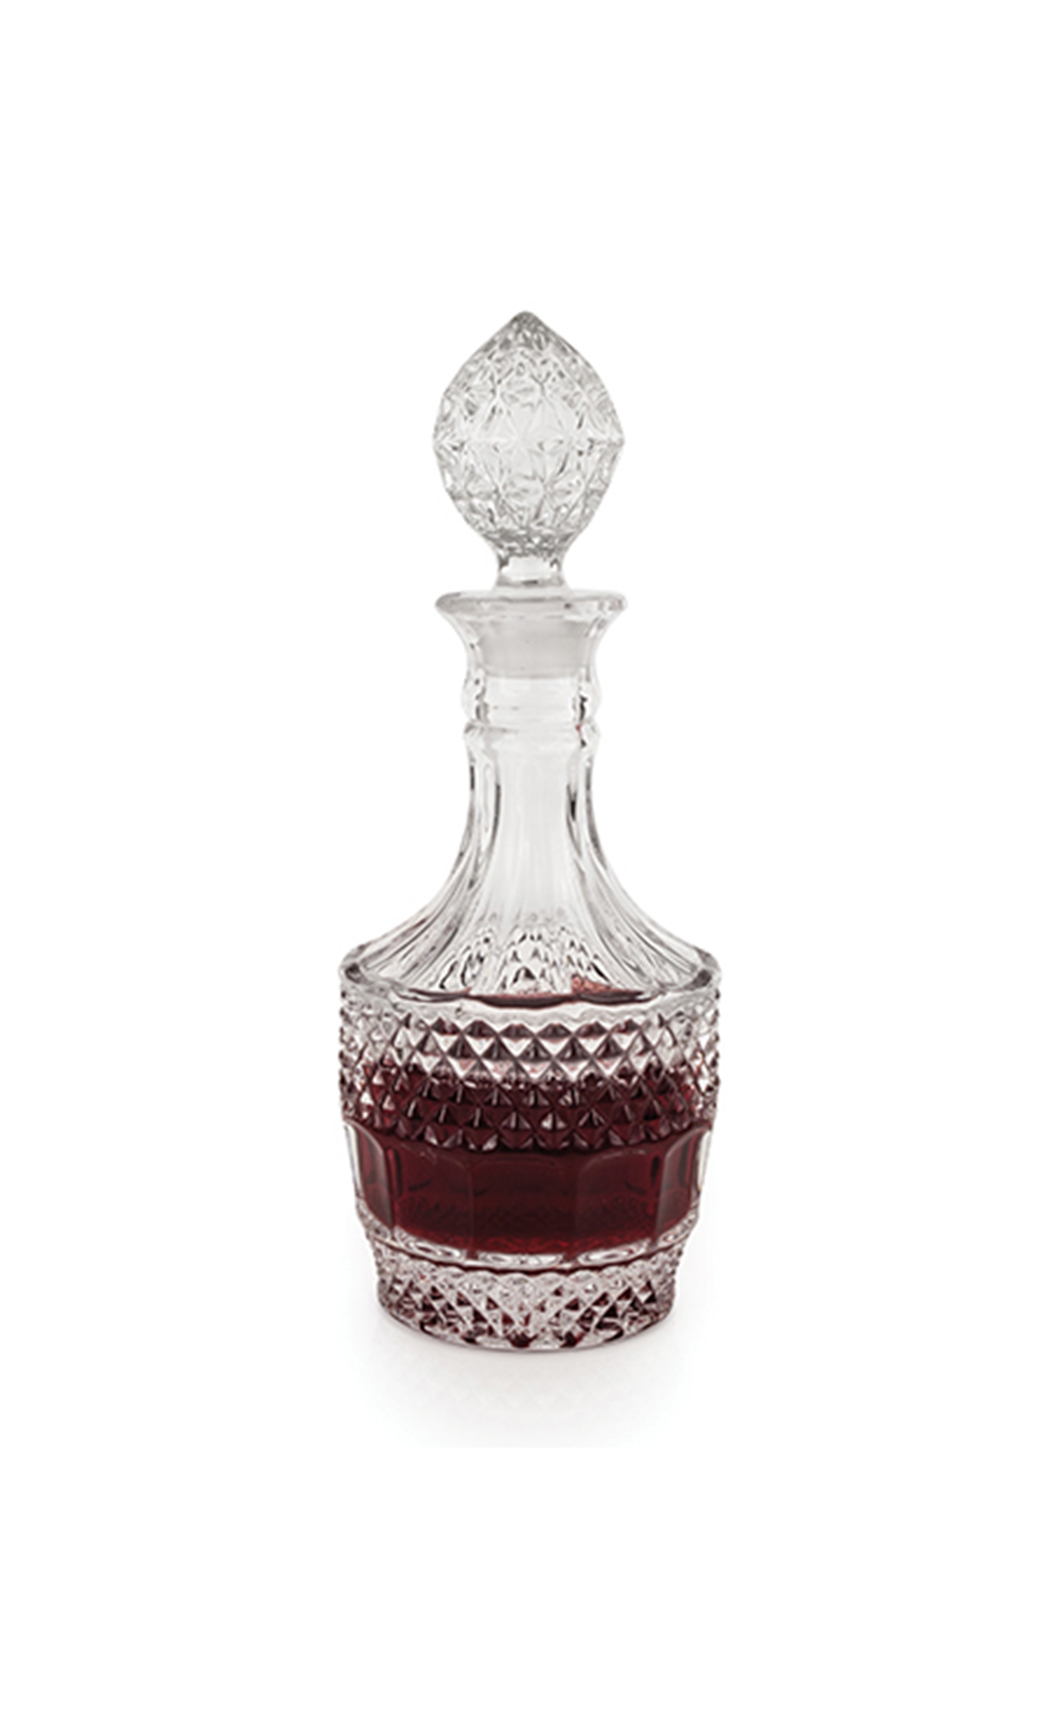 Chateau Crystal Vintage Decanter